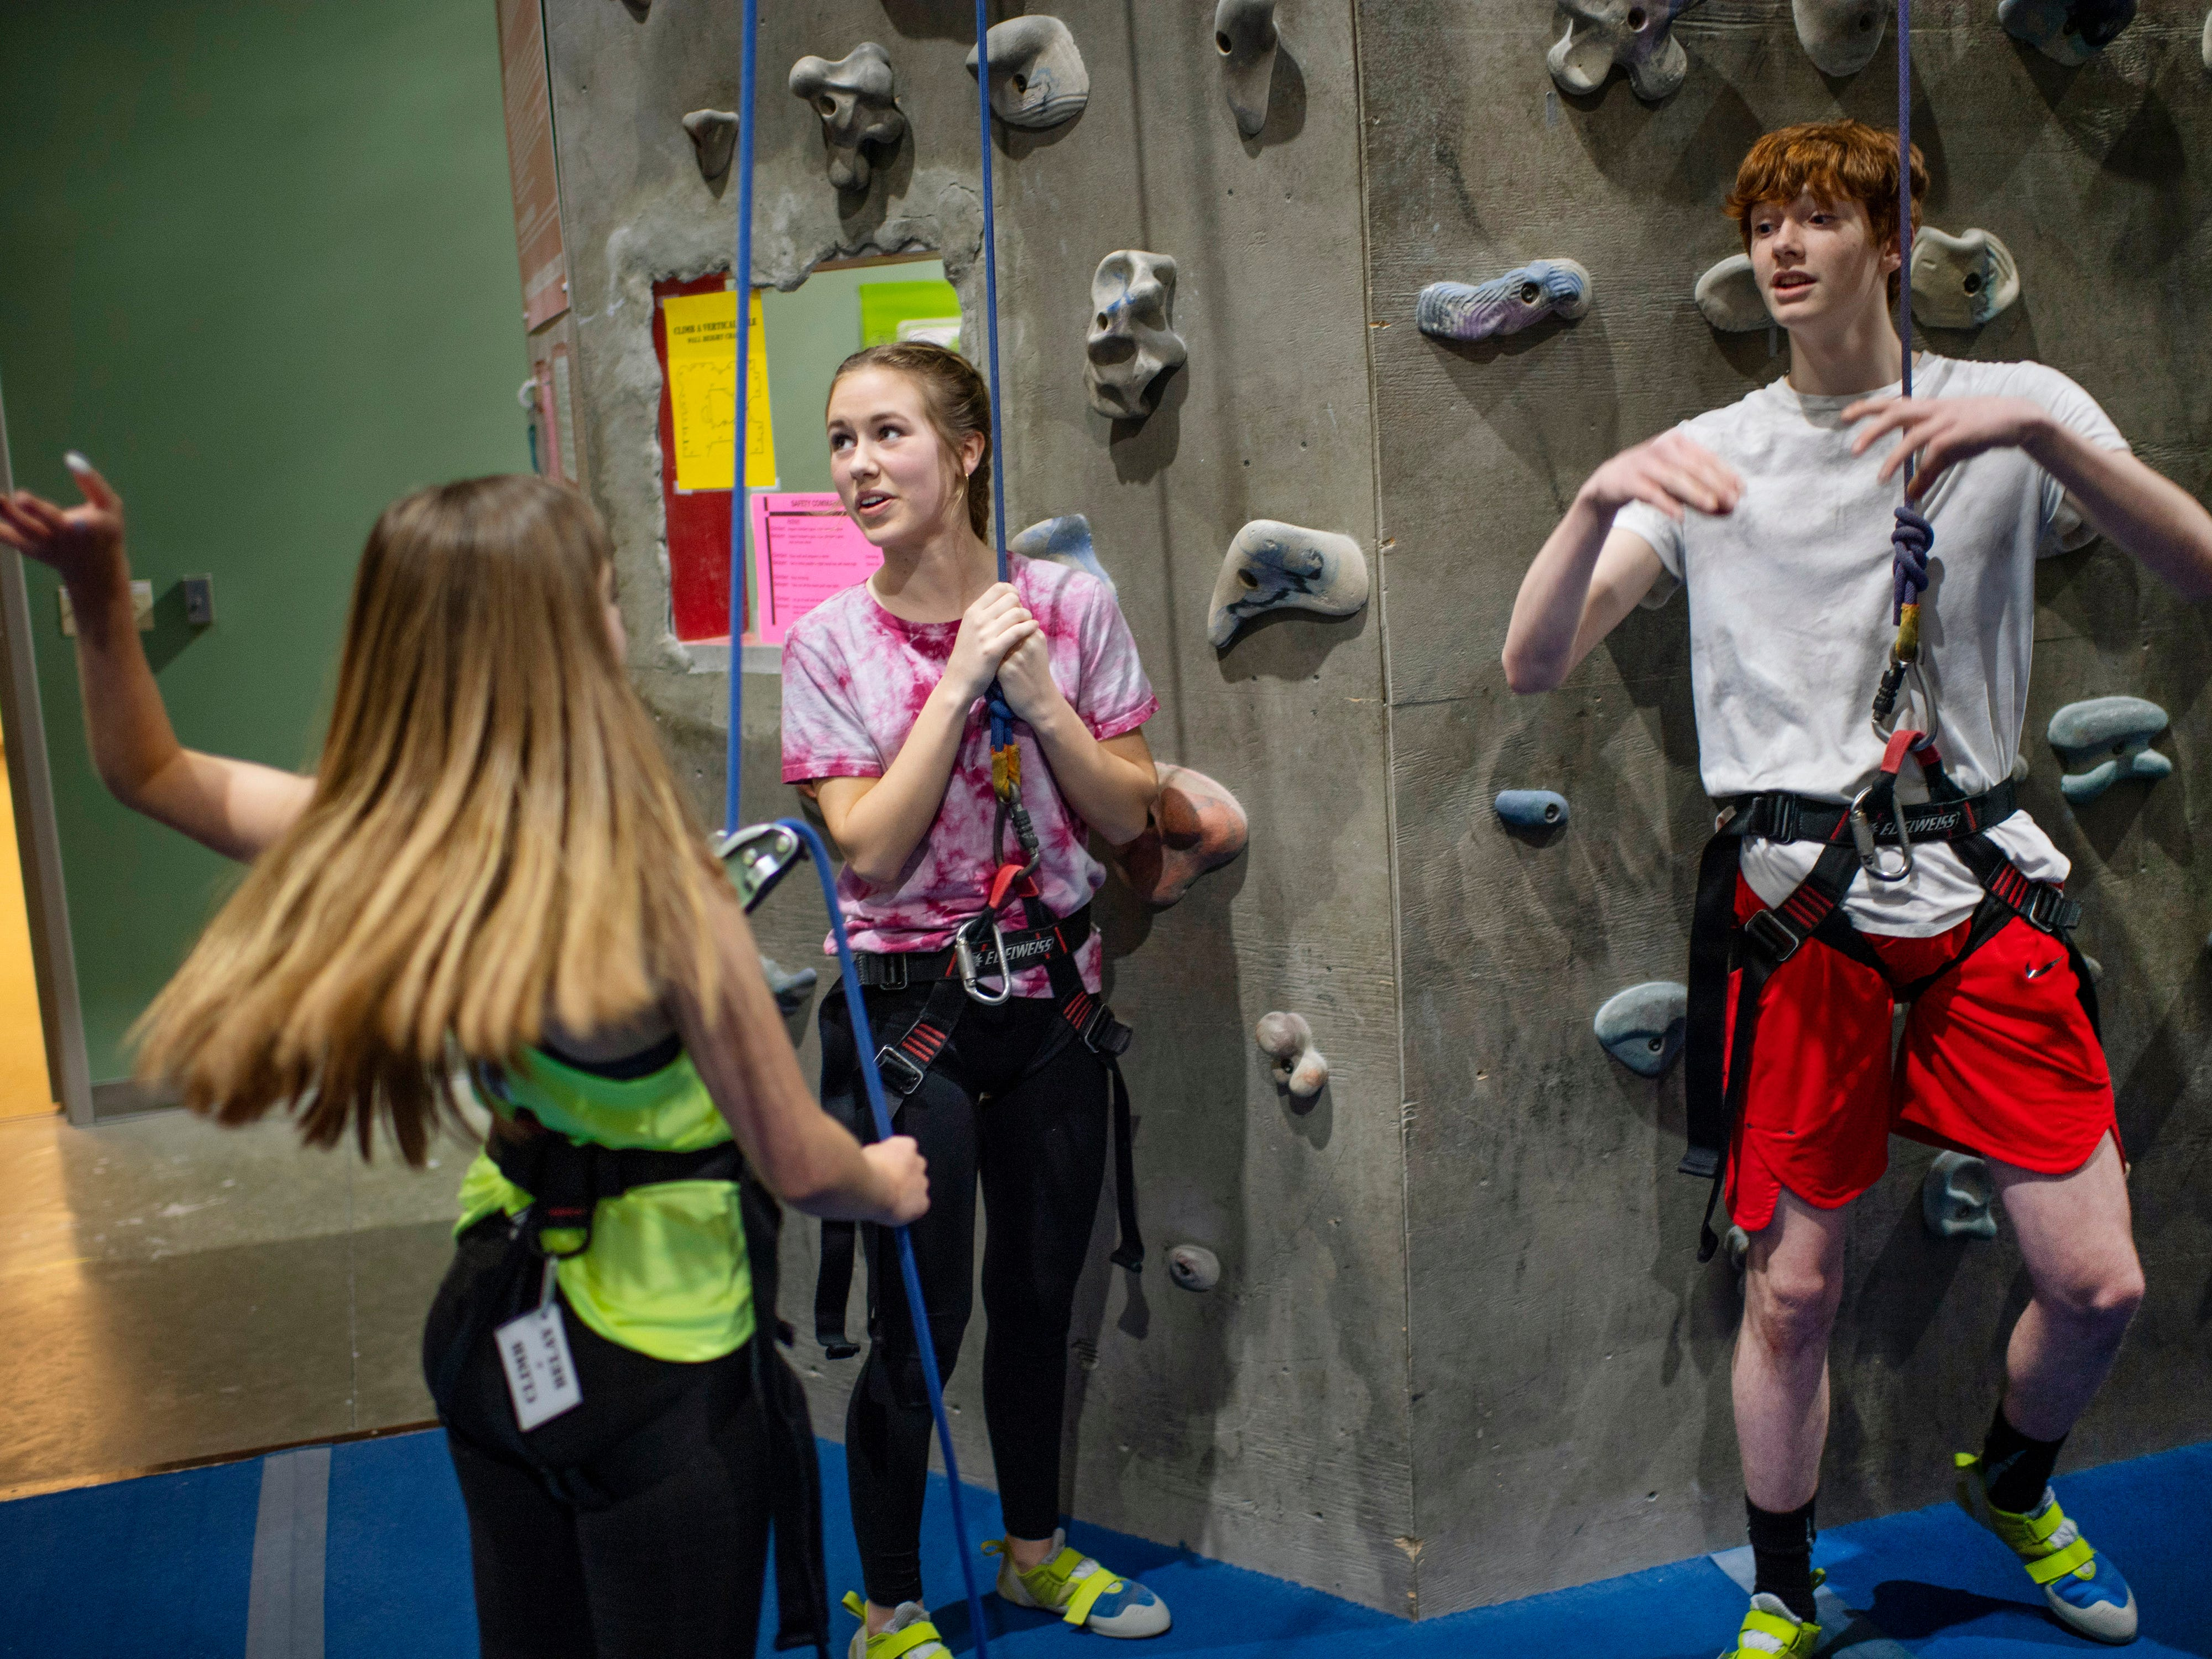 Orientation for the top-roping discipline has, from left, Ashton Zehner, 15, Ella Hubbard, 15, and Ethan Lynn, 15, swapping experiences at Vertical eXcape at 1315 N. Royal Avenue in Evansville Friday evening.